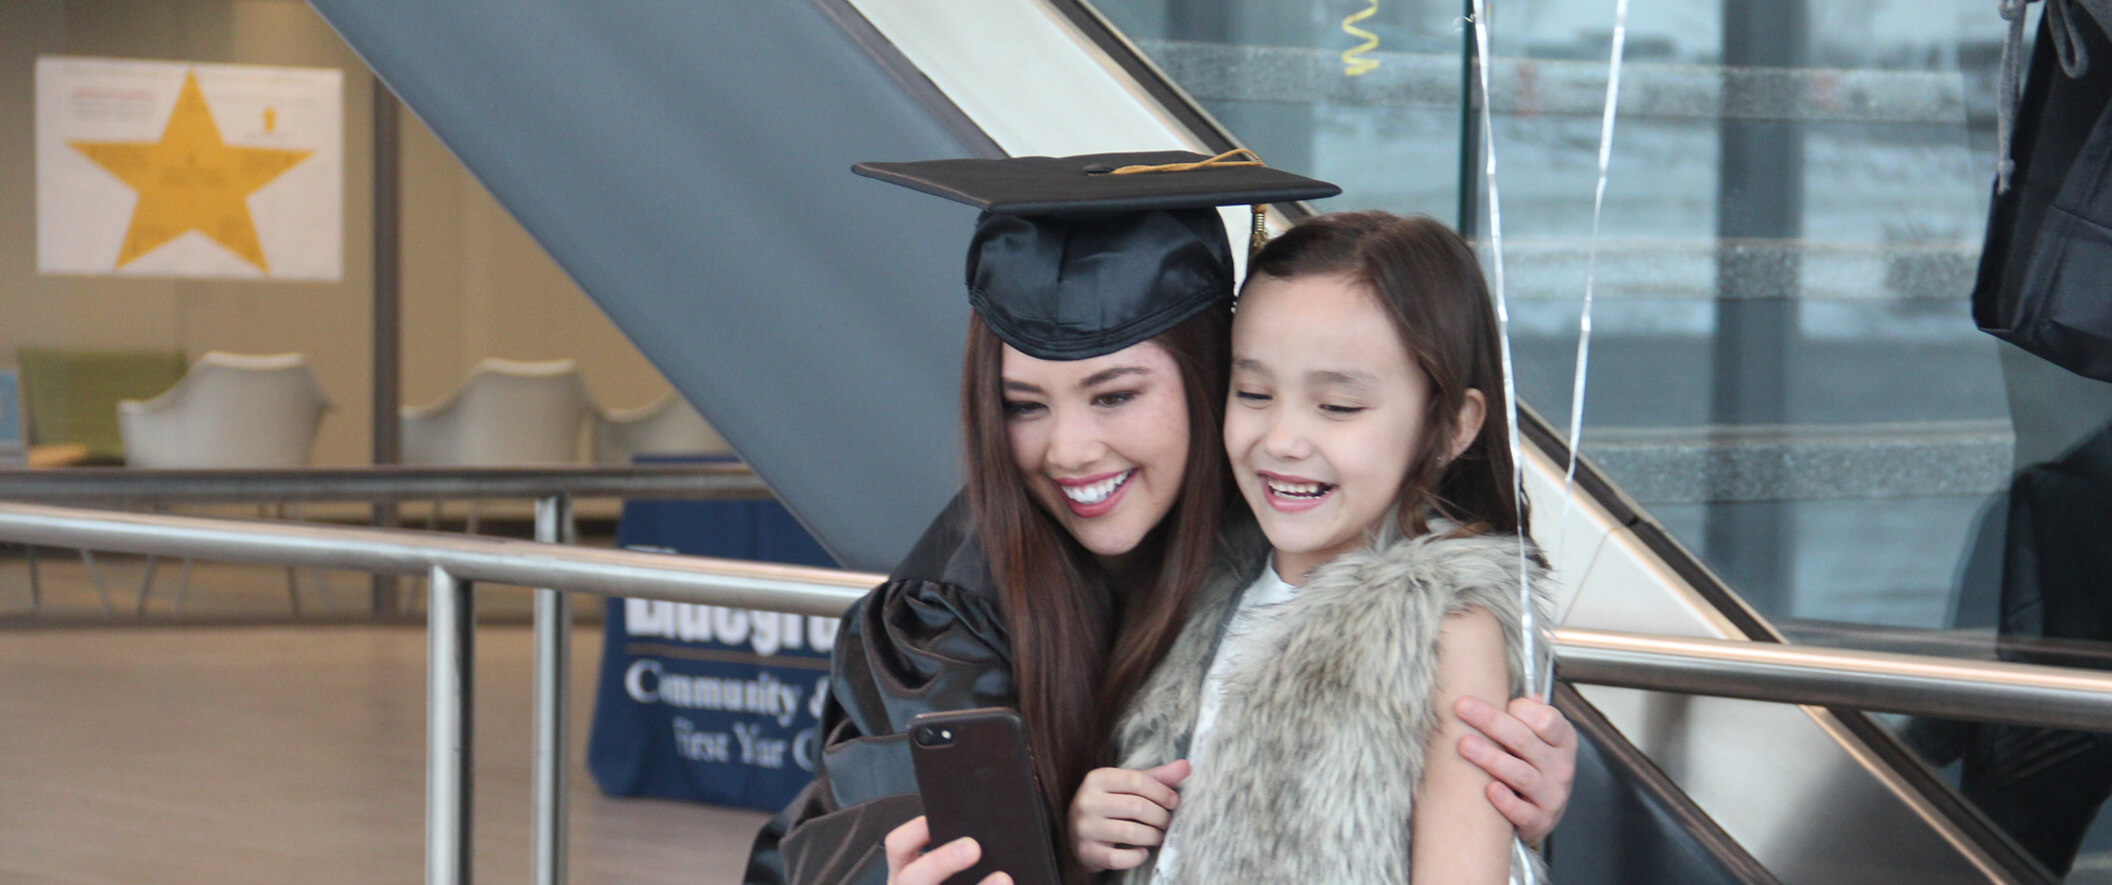 mom in grad outfit taking selfie with daughter